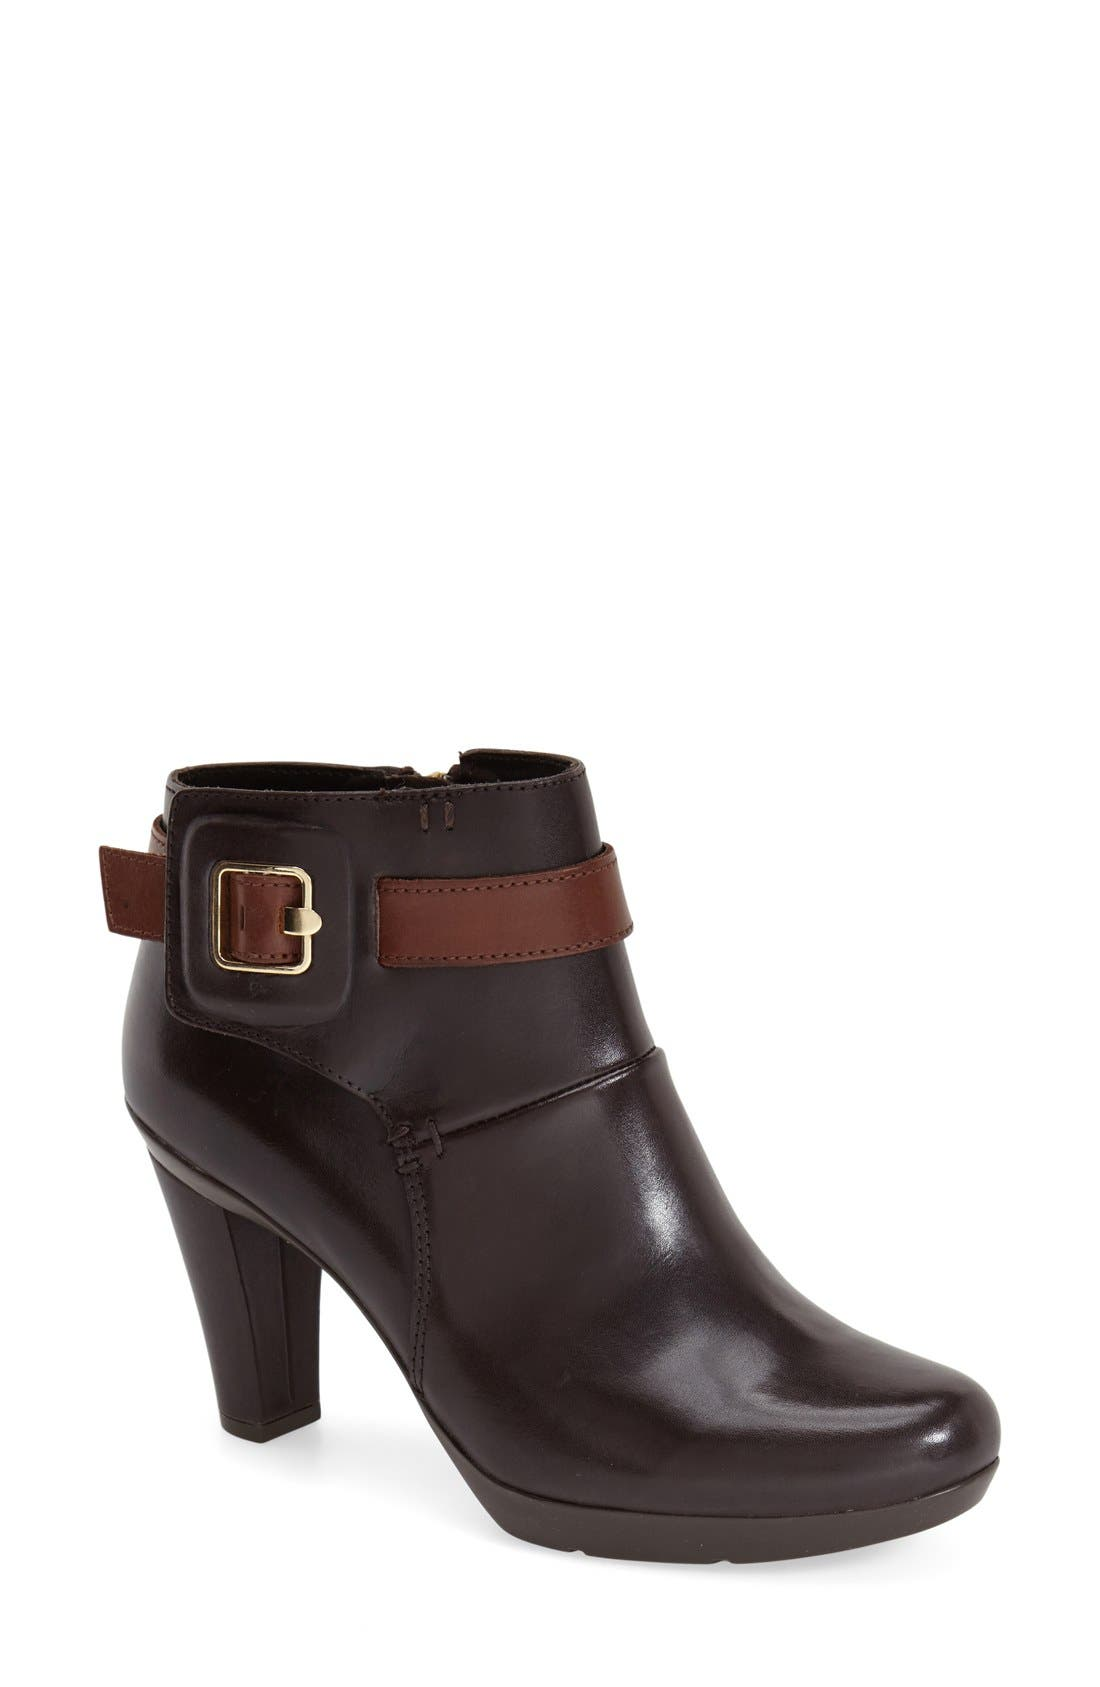 'Inspiration' Bootie,                         Main,                         color, 245